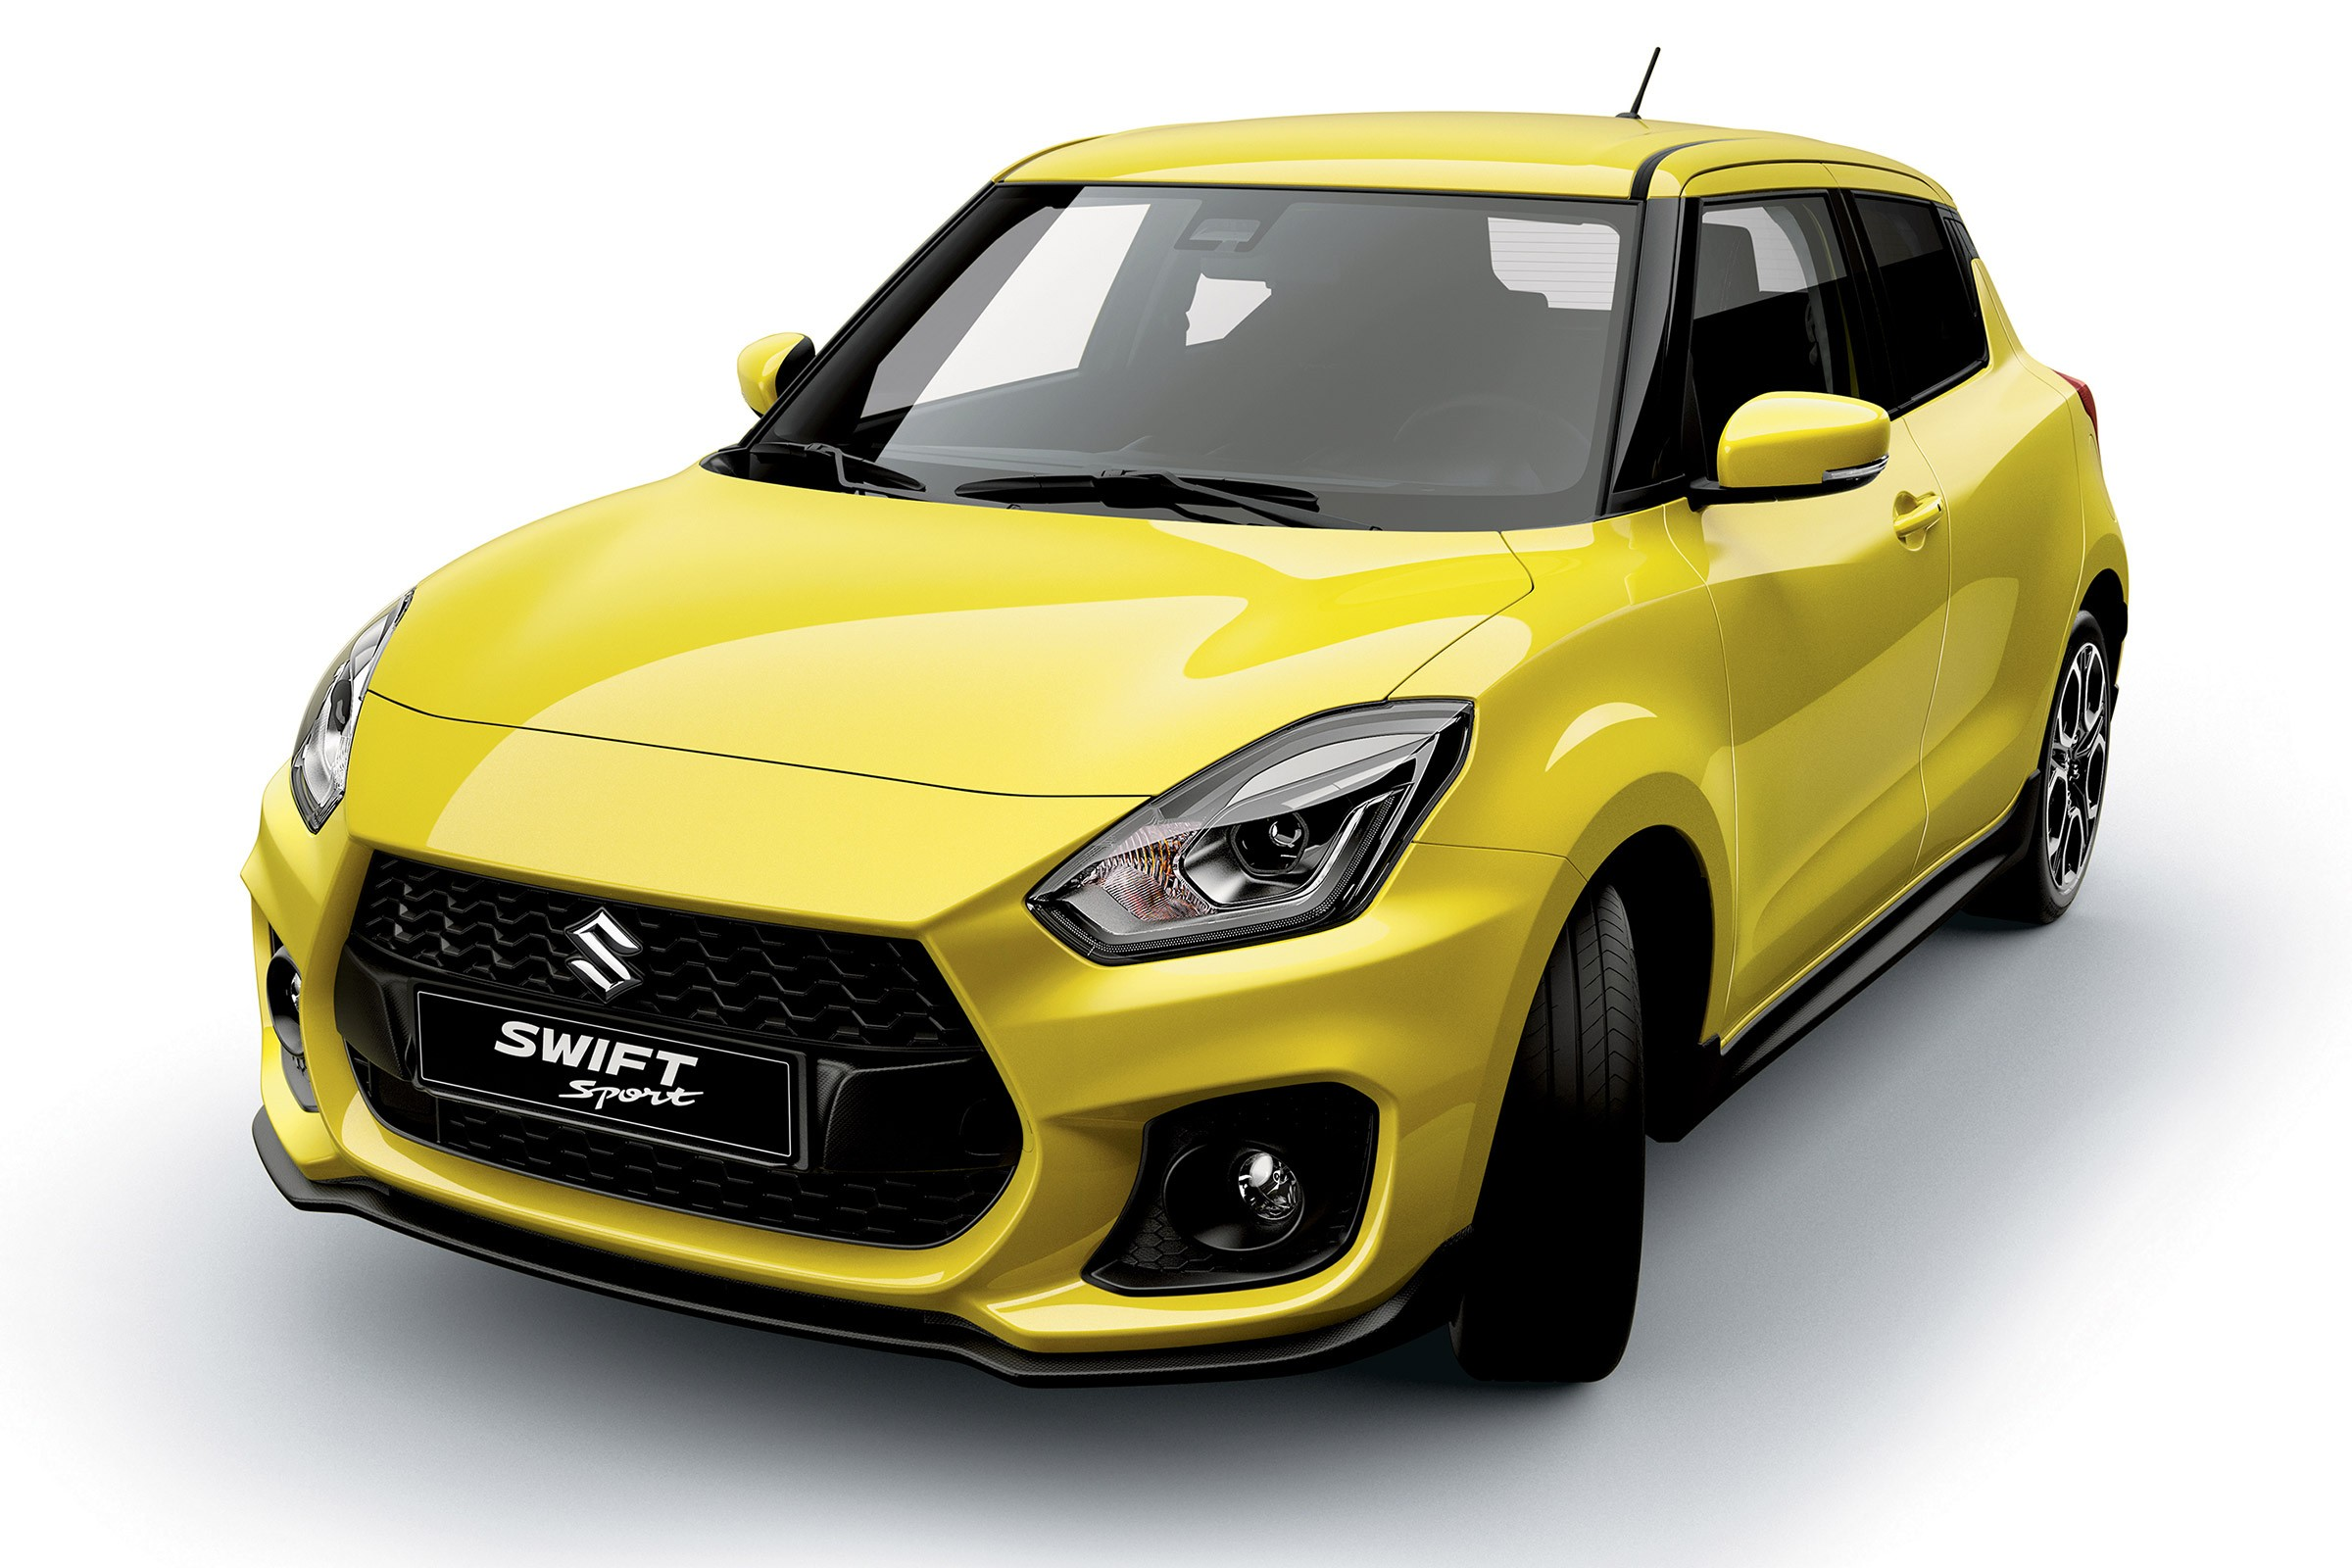 2018 suzuki swift sport interior confirms manual 1 0t. Black Bedroom Furniture Sets. Home Design Ideas